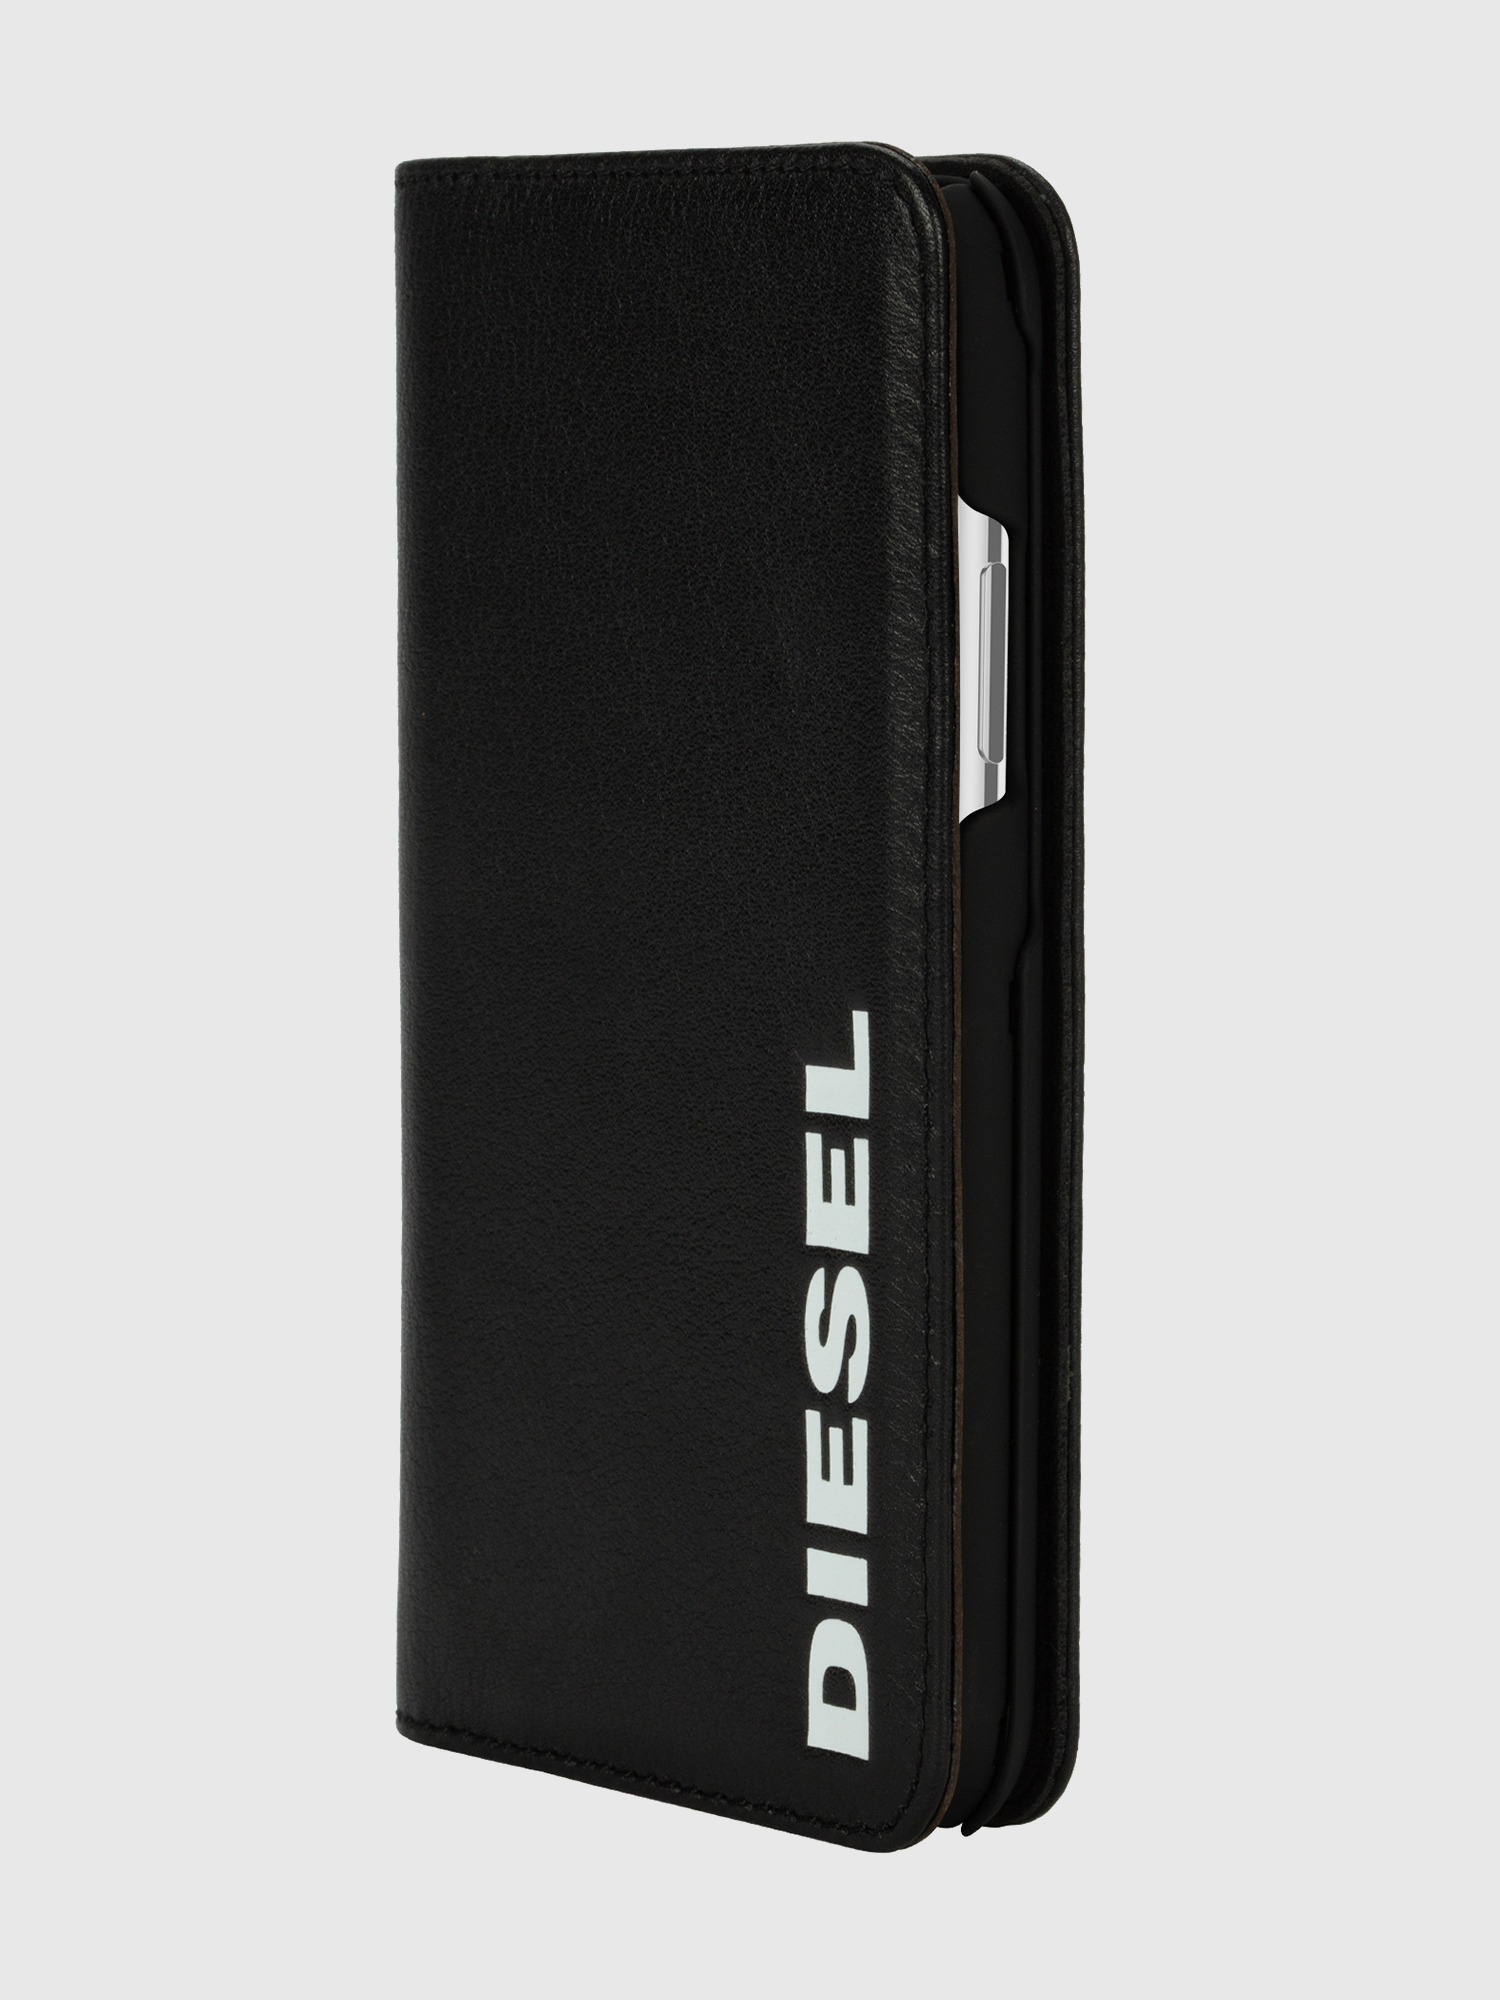 Diesel - DIESEL 2-IN-1 FOLIO CASE FOR IPHONE XS & IPHONE X,  - Fundas tipo libro - Image 3